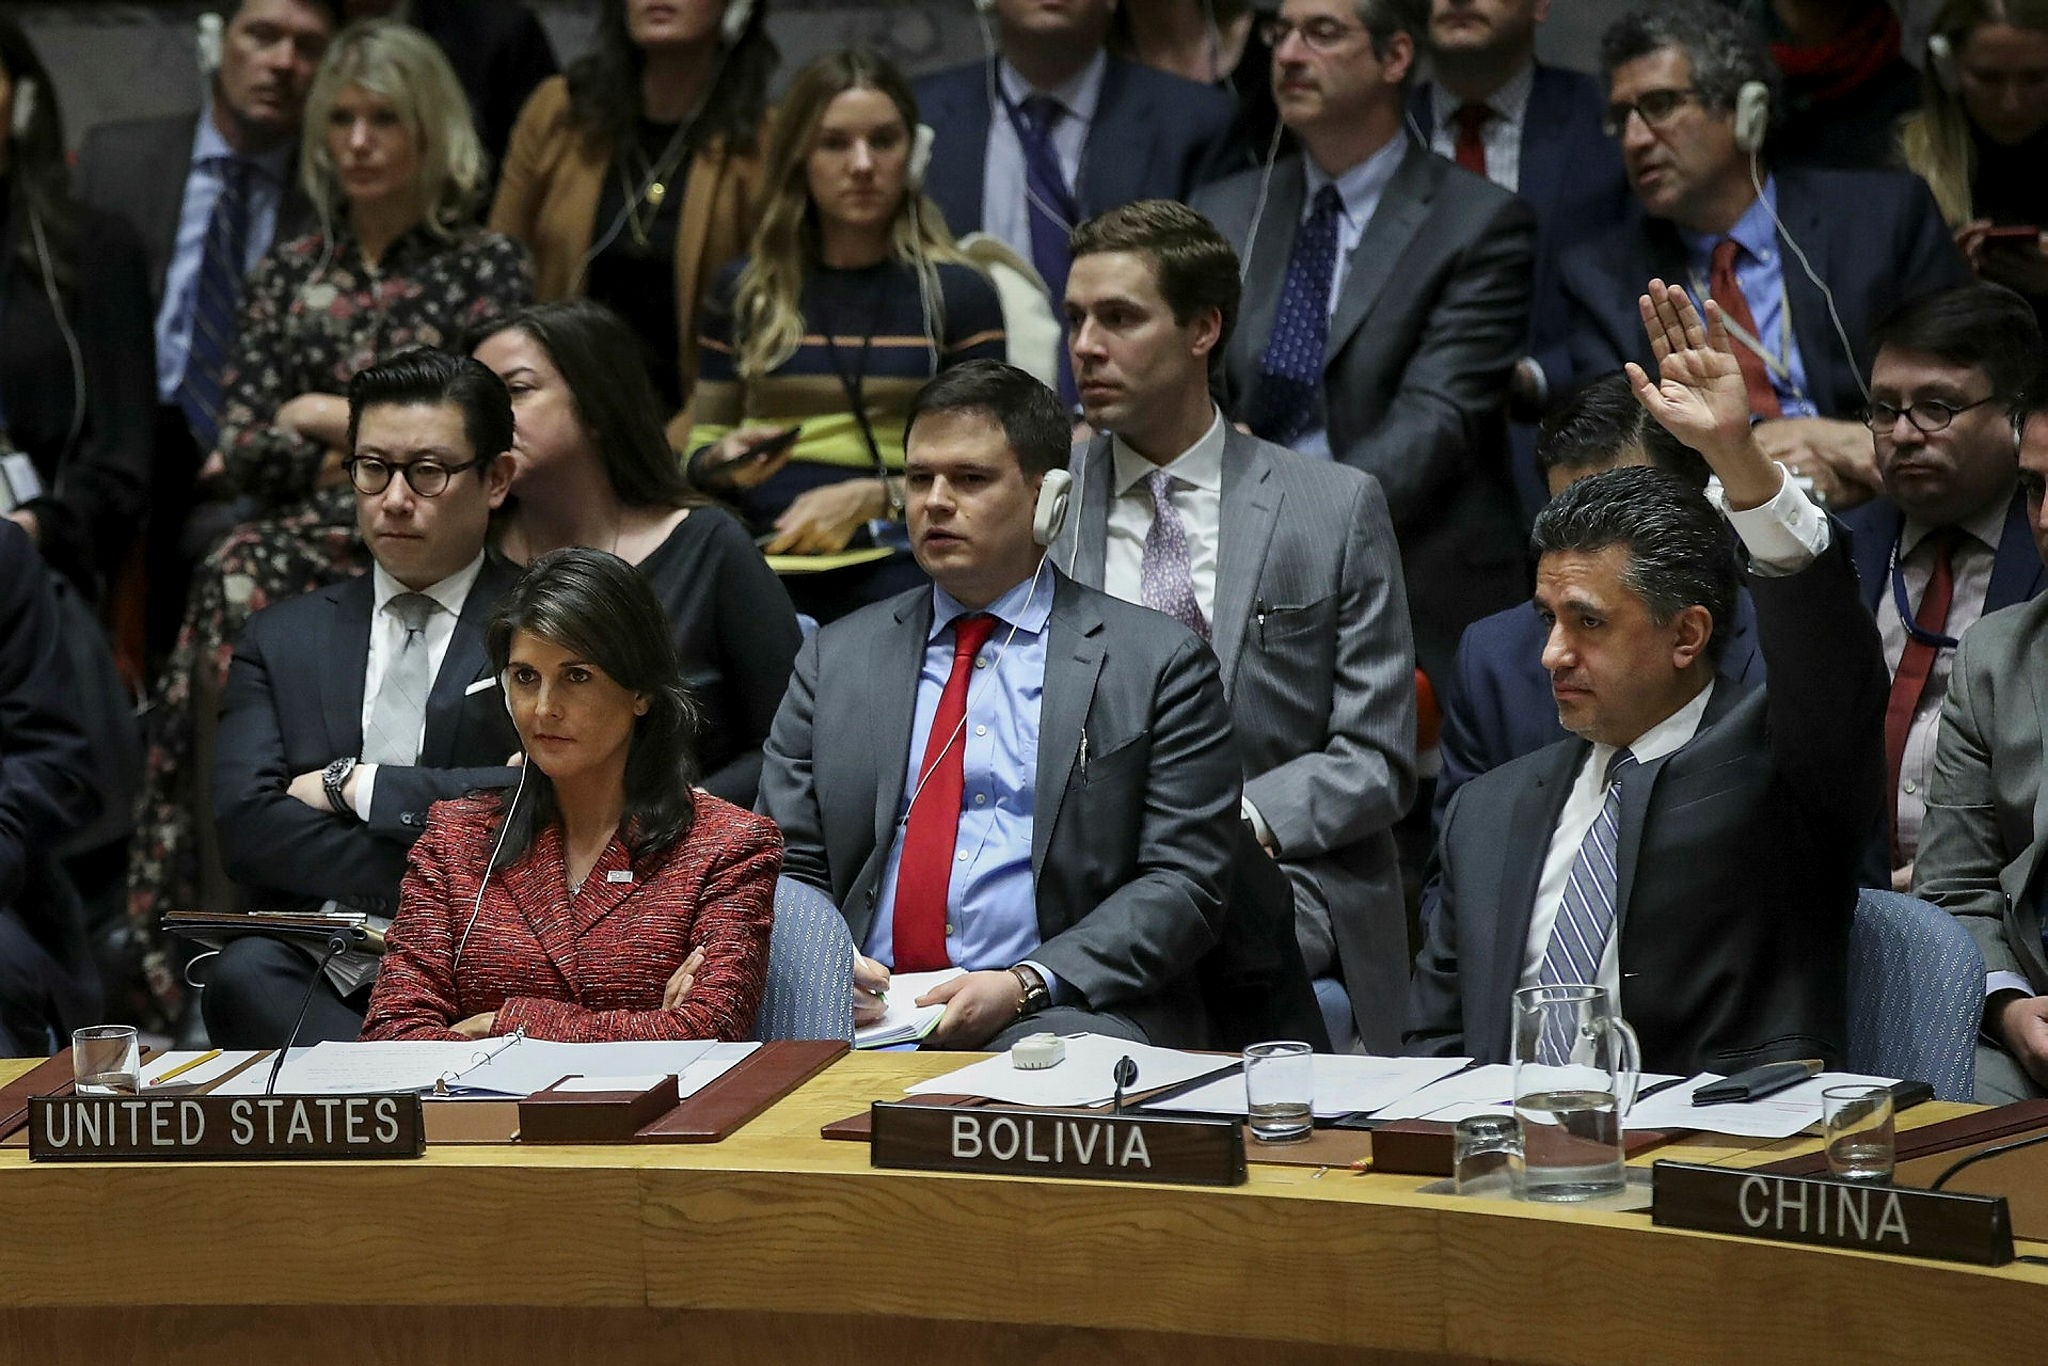 US envoy to the UN Nikki Haley votes no while her Bolivian counterpart Sacha Sergio Llorenty Soliz votes yes on a Russian draft resolution to create a new inquiry to find blame for the chemical weapons attack last week in Douma, Syria (AFP Photo)